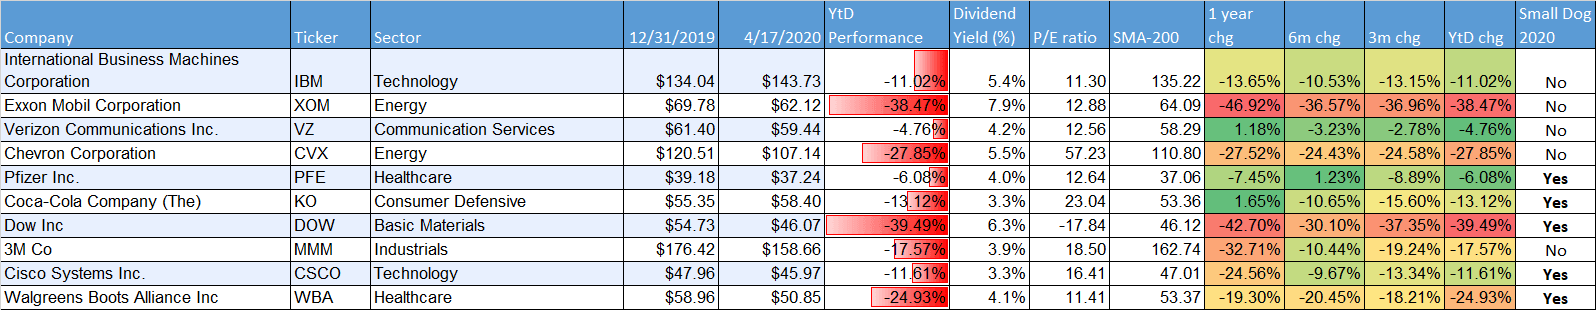 dog-of-the-dow-performance-april-2020